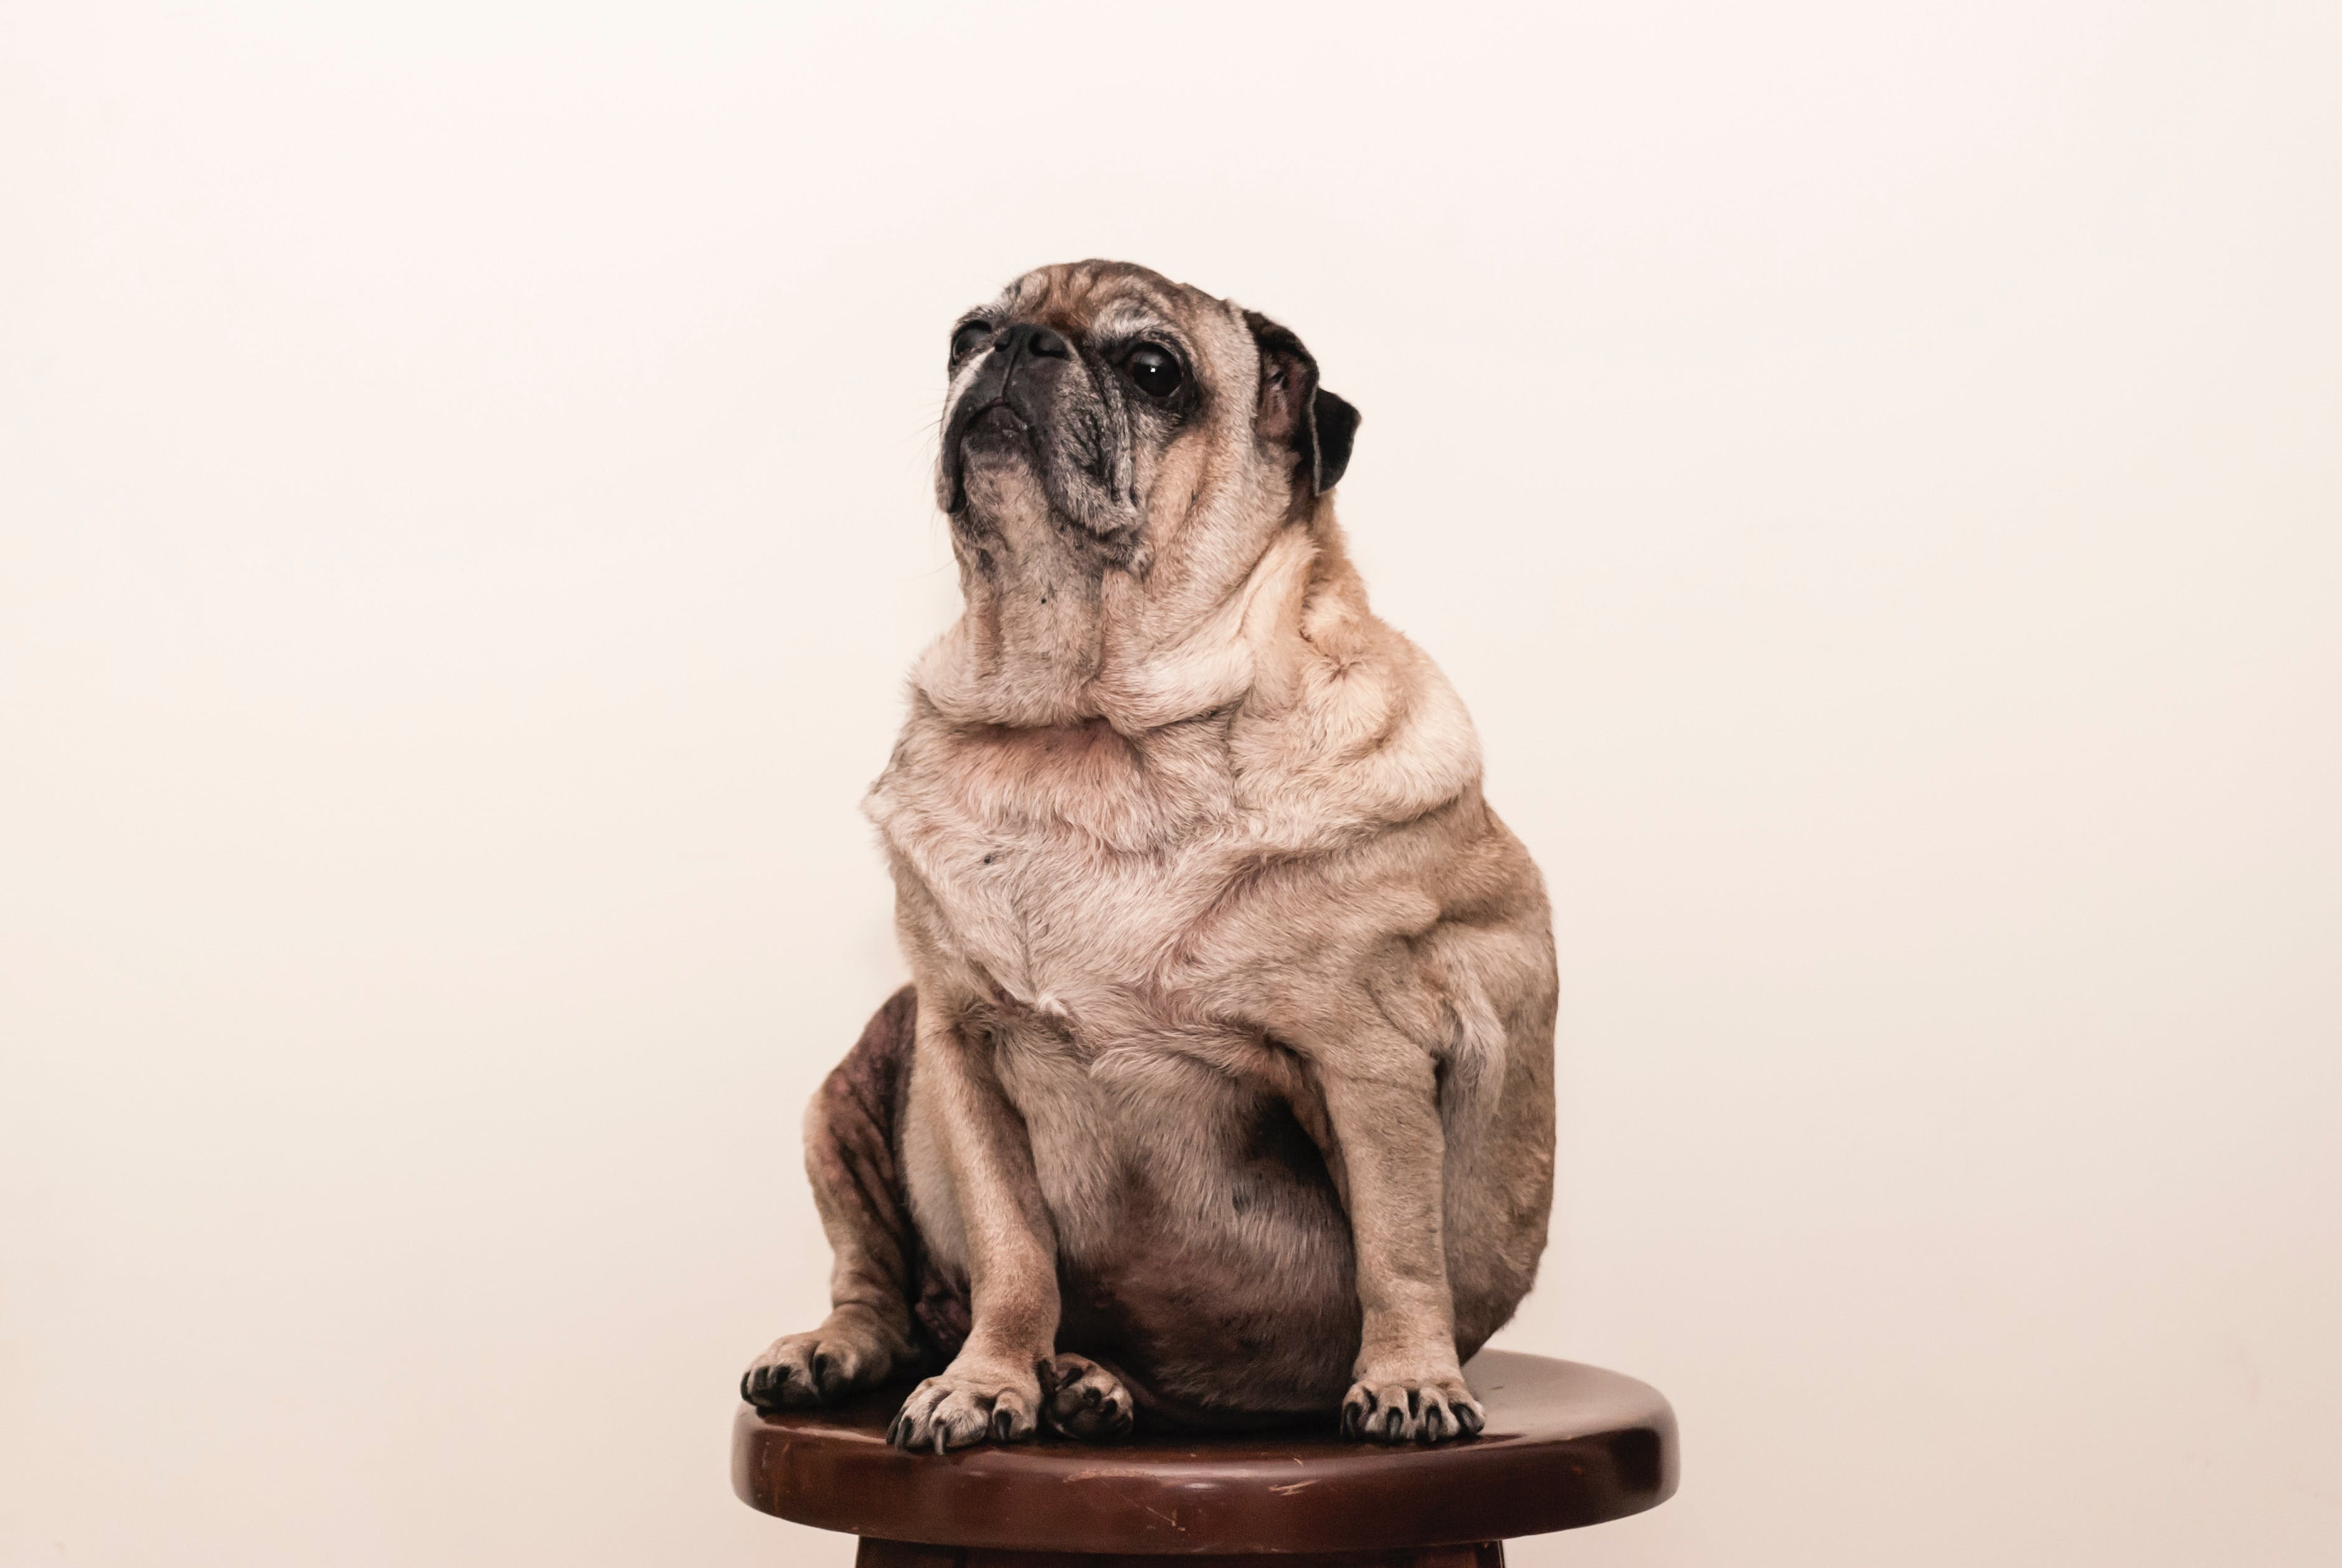 Photo of Brown Pug Sitting on Wooden Stool